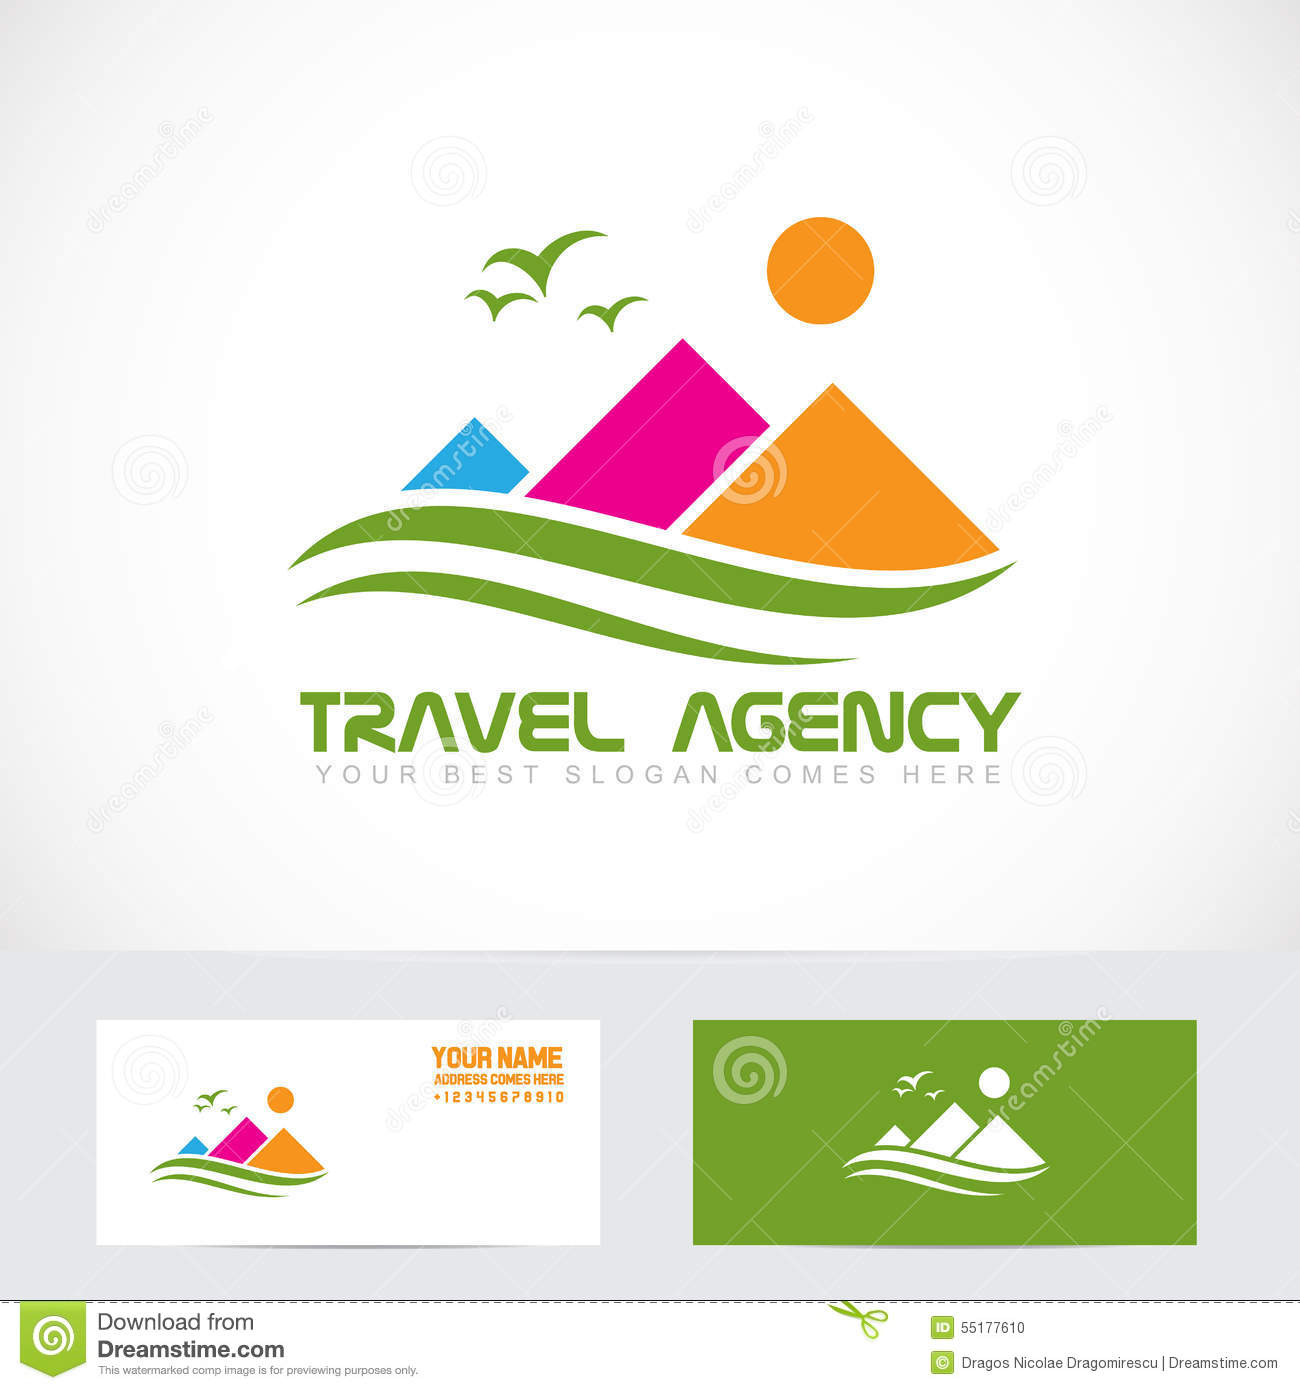 travel agency Wow philippines travel agency in ortigas center, metro-manila specializing in vacation packages, hotel and resort reservations, and flights to boracay, palawan, bohol, puerto galera and over 100 other destinations.